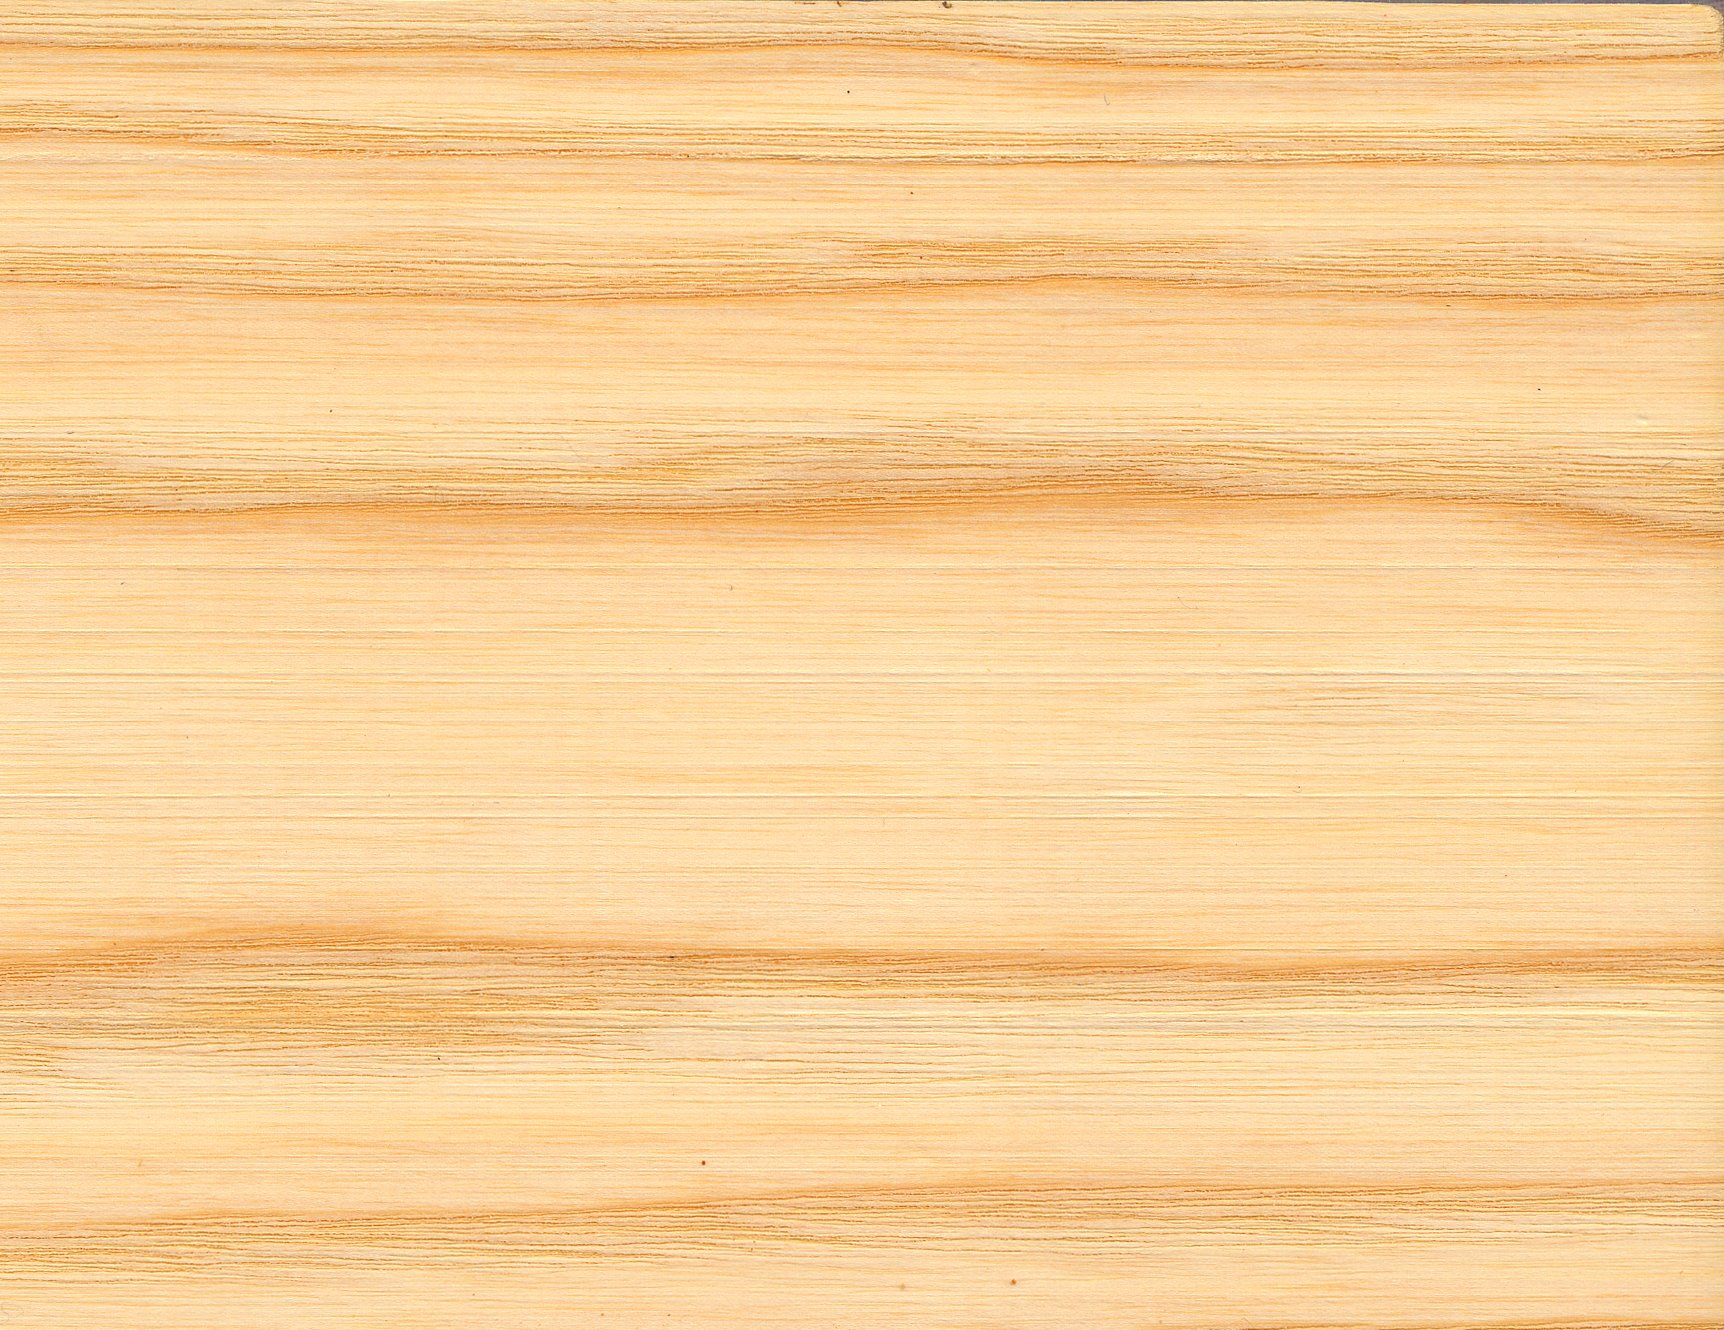 File Fraxinus Excelsior Wood Tangent Section 1 Beentree Jpg